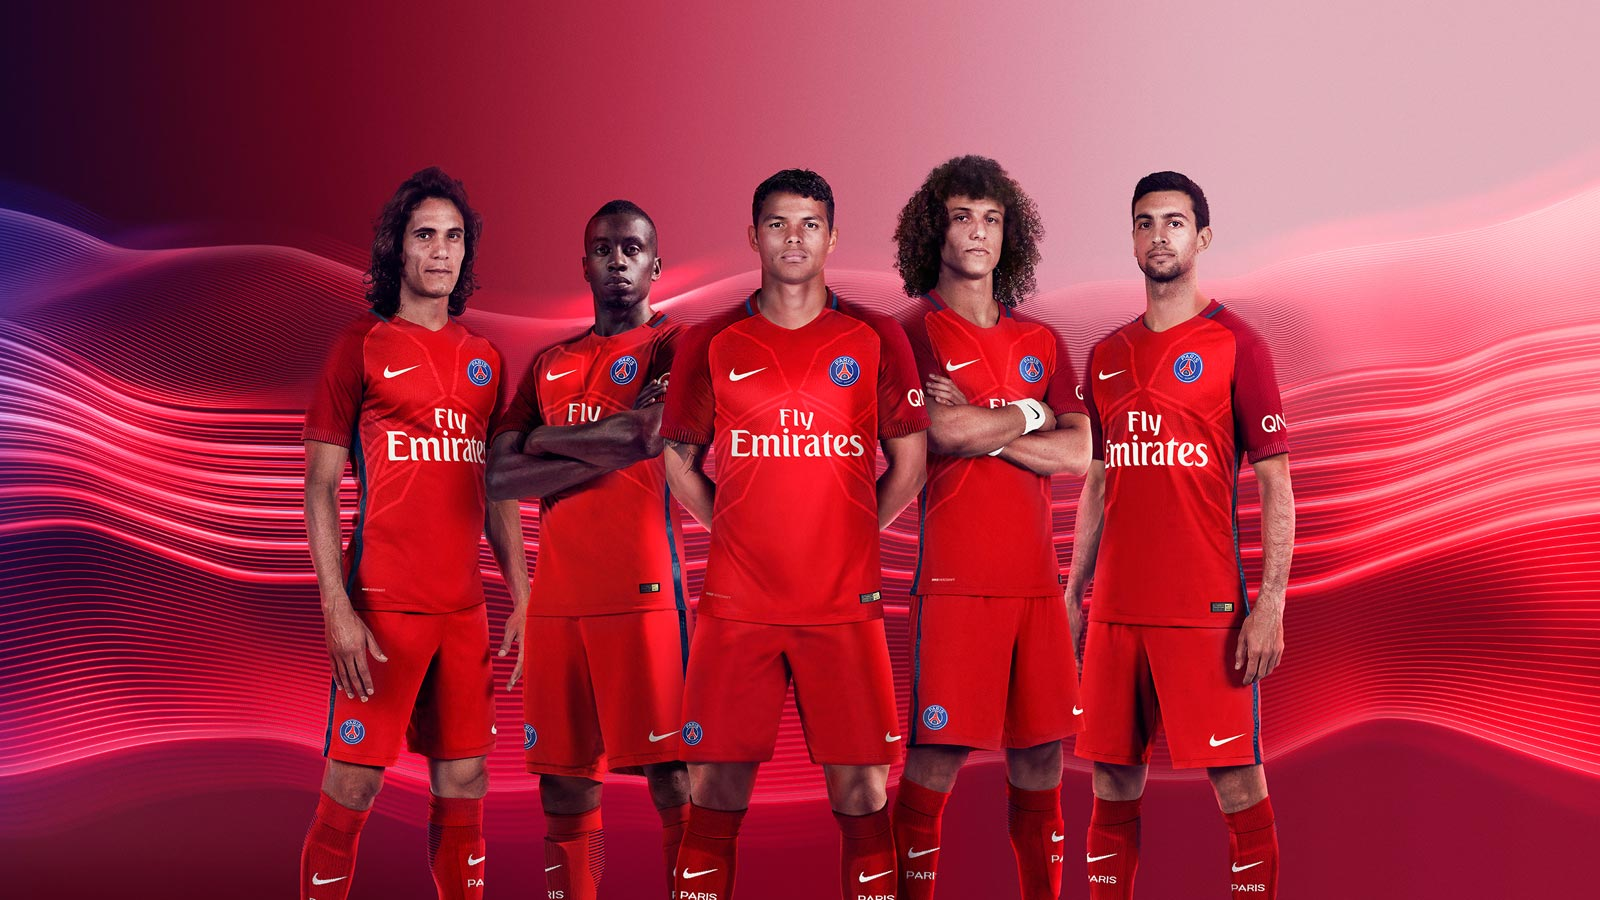 PSG: Paris Saint-Germain 16-17 Away Kit Released